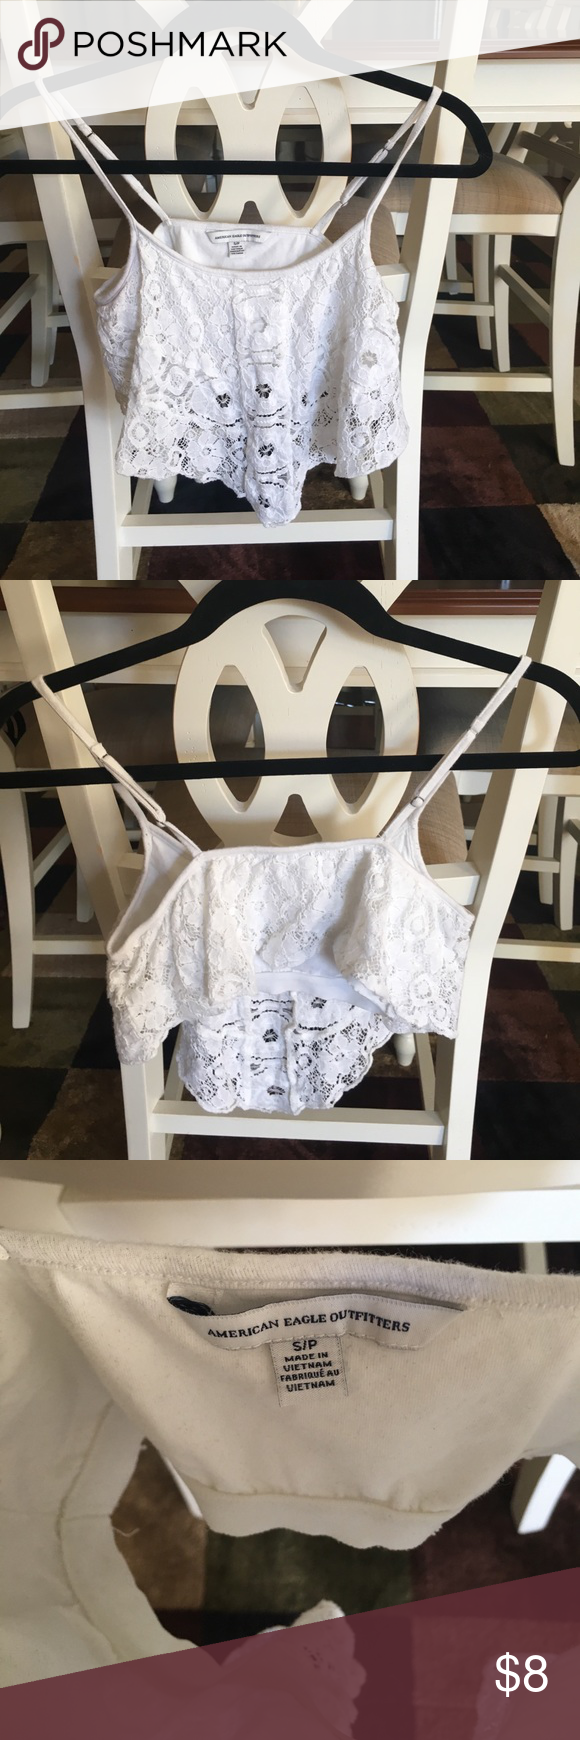 Crochet Crop top Off white crochet top with build in bra. American Eagle Outfitters Tops Crop Tops